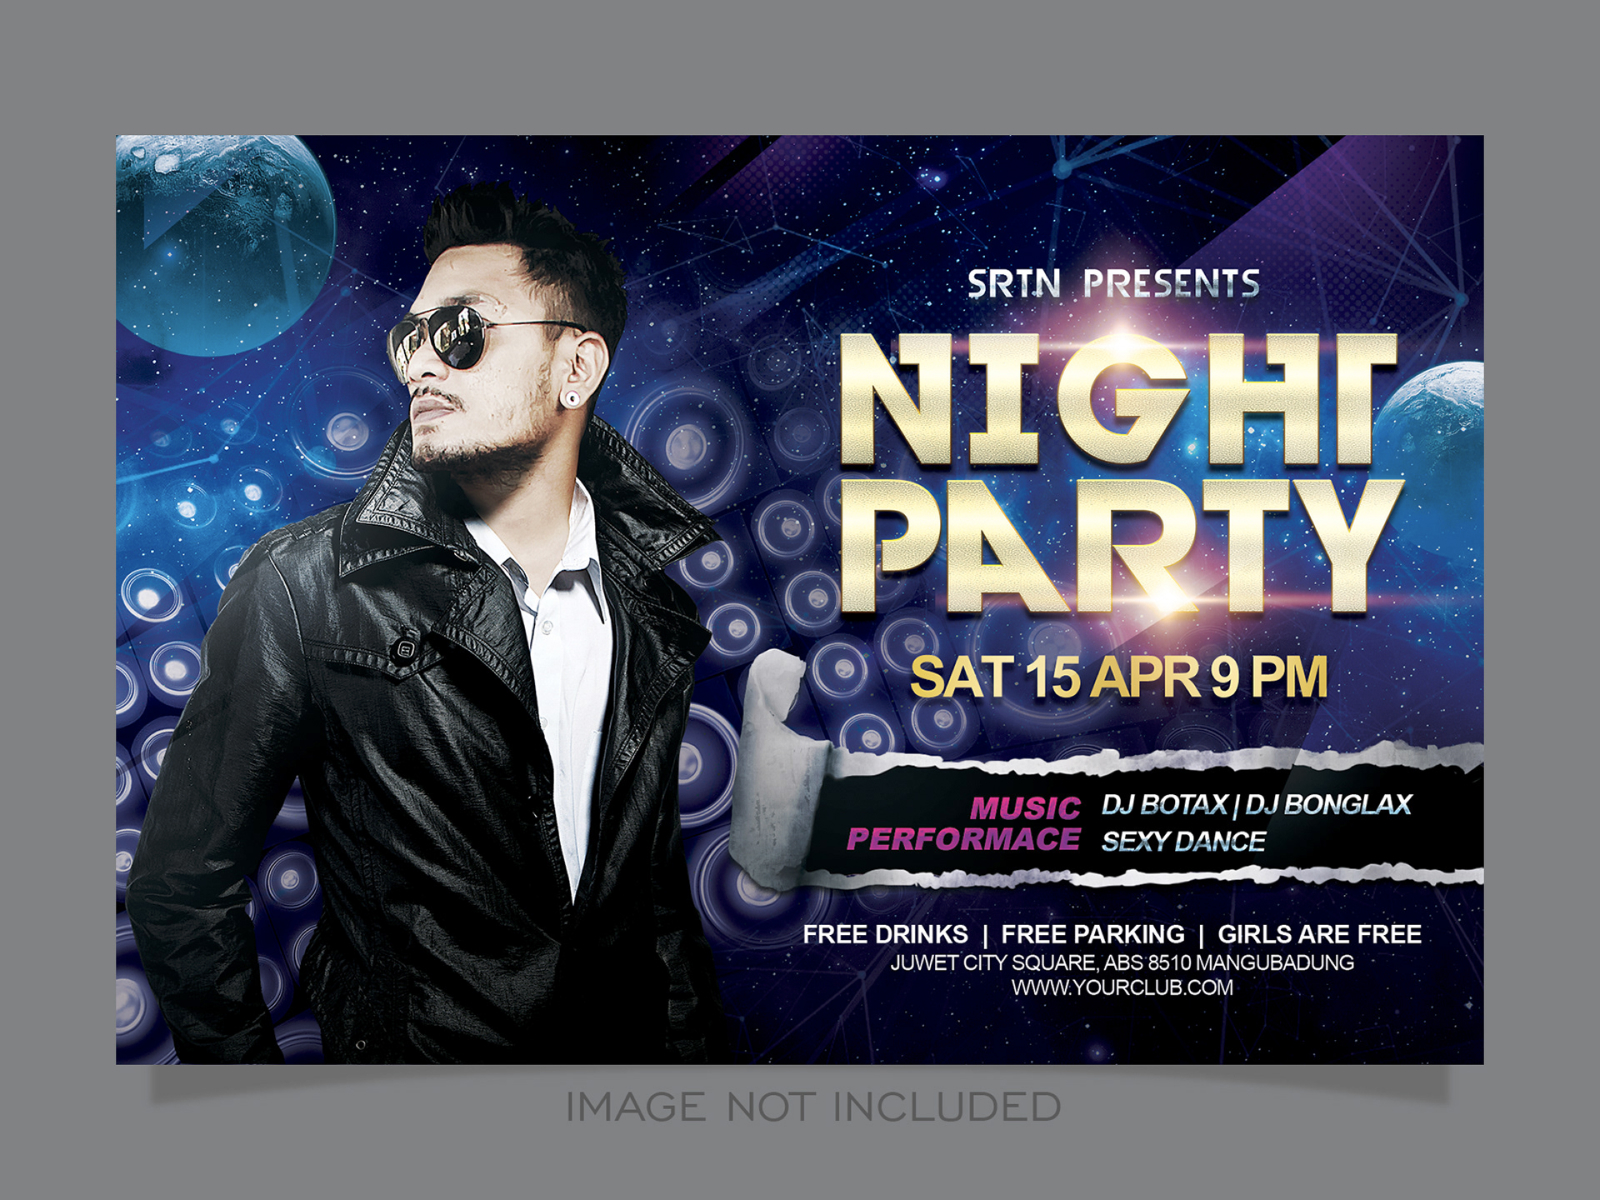 Night Party Flyer Template cover image